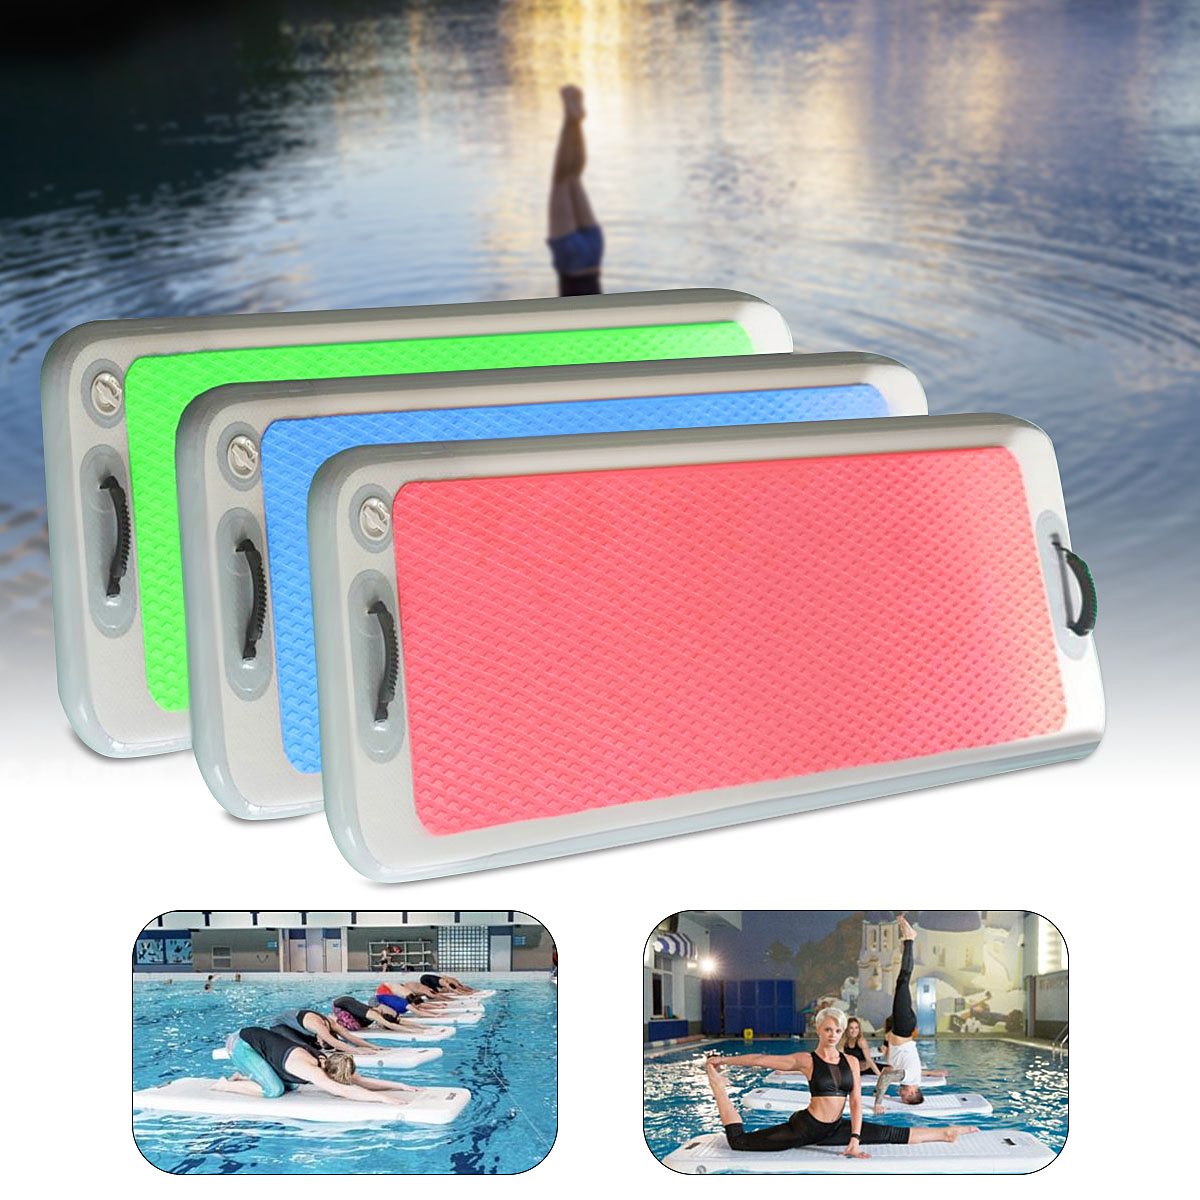 200x62x10cm Inflatable Floating Yoga Mat Air Tracks Tumbling For Gymnastics SUP Paddle Board200x62x10cm Inflatable Floating Yoga Mat Air Tracks Tumbling For Gymnastics SUP Paddle Board